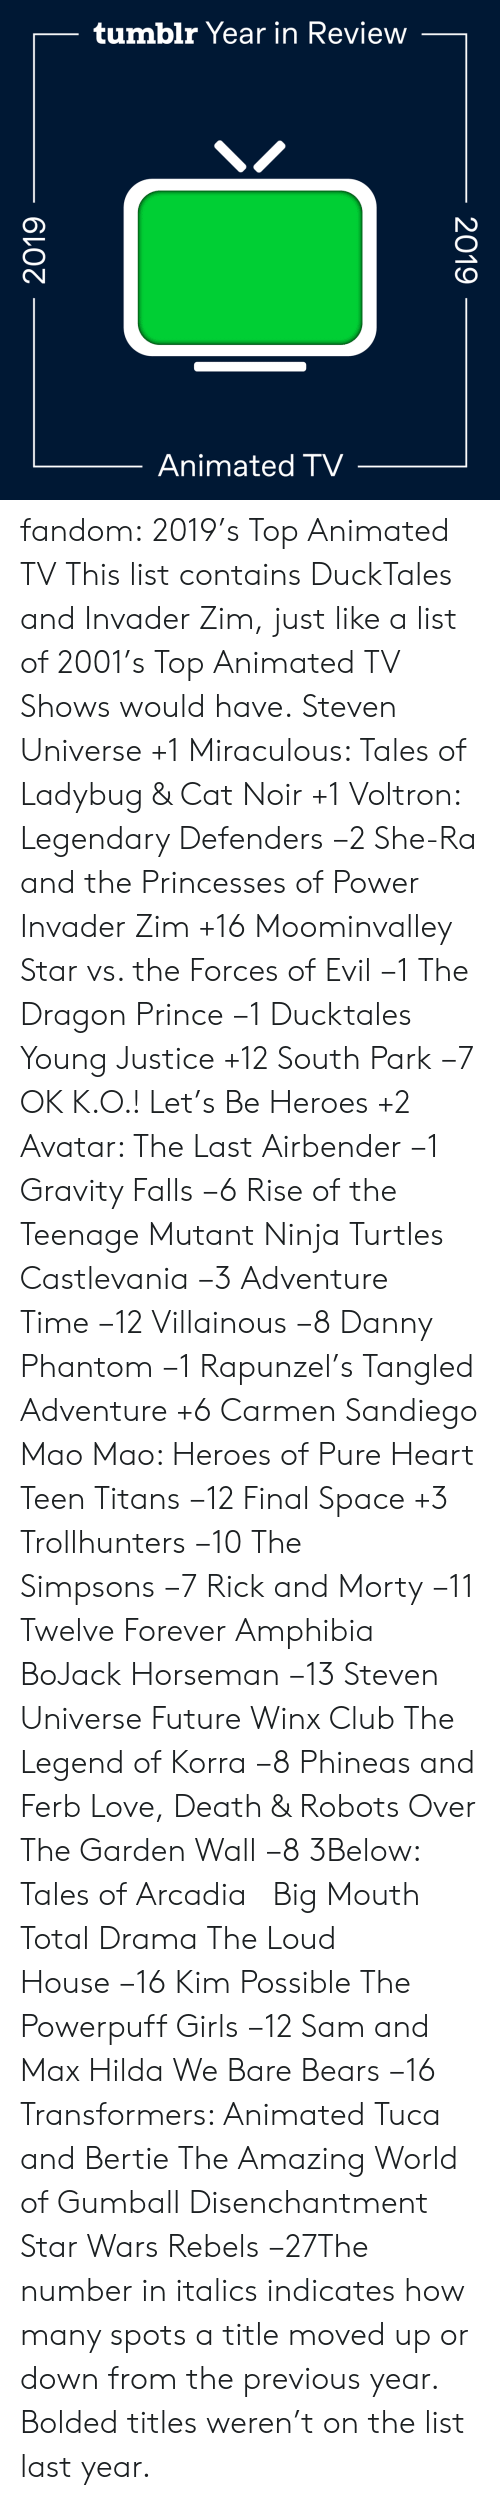 Gravity: tumblr Year in Review  Animated TV  2019  2019 fandom:  2019's Top Animated TV  This list contains DuckTales and Invader Zim, just like a list of 2001's Top Animated TV Shows would have.  Steven Universe +1  Miraculous: Tales of Ladybug & Cat Noir +1  Voltron: Legendary Defenders −2  She-Ra and the Princesses of Power   Invader Zim +16  Moominvalley  Star vs. the Forces of Evil −1  The Dragon Prince −1  Ducktales  Young Justice +12  South Park −7  OK K.O.! Let's Be Heroes +2  Avatar: The Last Airbender −1  Gravity Falls −6  Rise of the Teenage Mutant Ninja Turtles  Castlevania −3  Adventure Time −12  Villainous −8  Danny Phantom −1  Rapunzel's Tangled Adventure +6  Carmen Sandiego  Mao Mao: Heroes of Pure Heart  Teen Titans −12  Final Space +3  Trollhunters −10  The Simpsons −7  Rick and Morty −11  Twelve Forever  Amphibia  BoJack Horseman −13  Steven Universe Future  Winx Club  The Legend of Korra −8  Phineas and Ferb  Love, Death & Robots  Over The Garden Wall −8  3Below: Tales of Arcadia    Big Mouth  Total Drama  The Loud House −16  Kim Possible  The Powerpuff Girls −12  Sam and Max  Hilda  We Bare Bears −16  Transformers: Animated  Tuca and Bertie  The Amazing World of Gumball  Disenchantment Star Wars Rebels −27The number in italics indicates how many spots a title moved up or down from the previous year. Bolded titles weren't on the list last year.